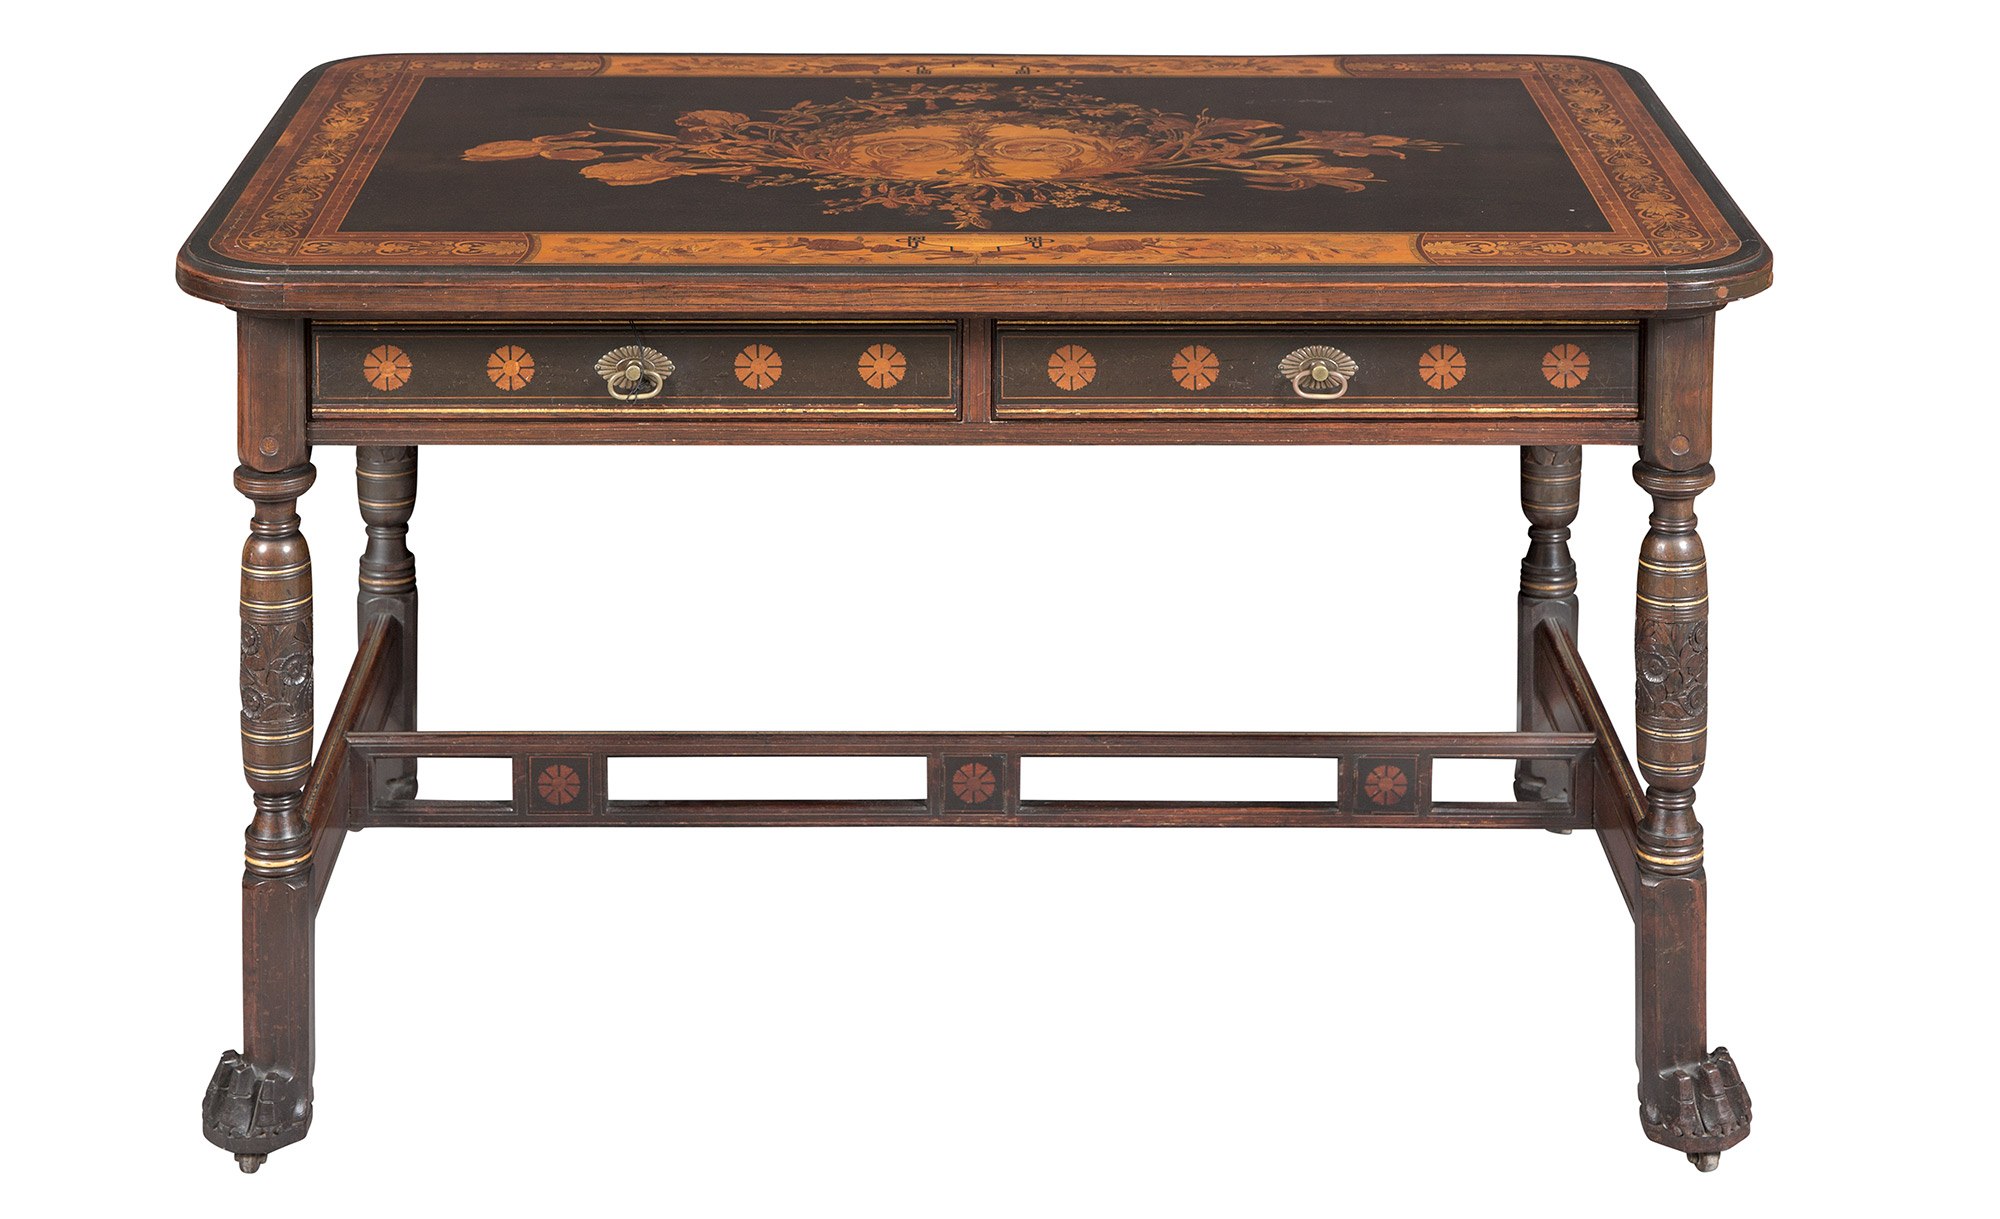 Lot image - Herter Brothers Aesthetic Movement Rosewood, Marquetry and Parcel-Gilt Inlaid Center Table